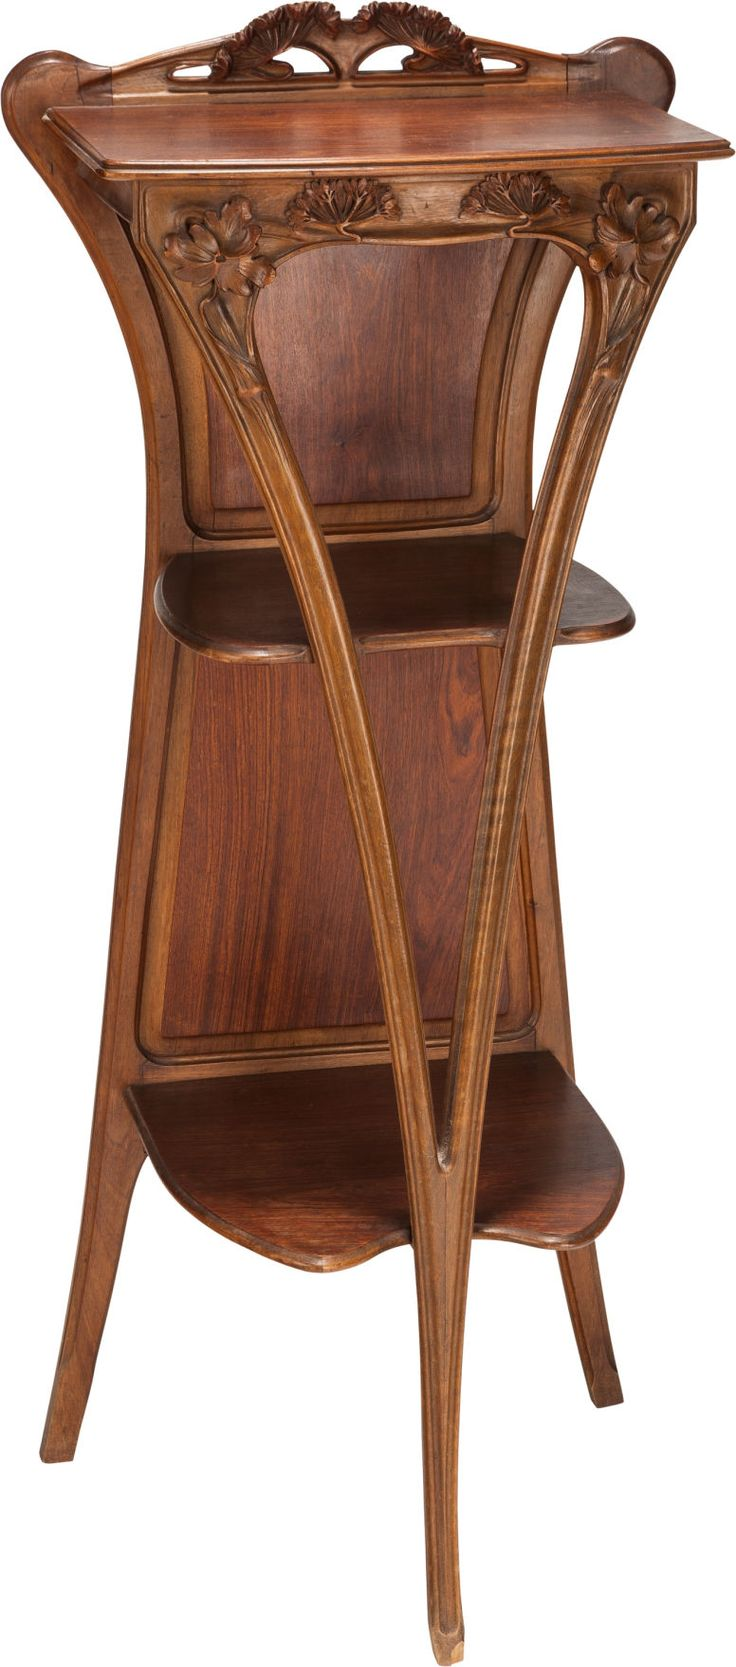 Rare original beech stained chair by eugene gaillard circa 1900 at - French Art Nouveau Mahogany Tag Re Circa 1900